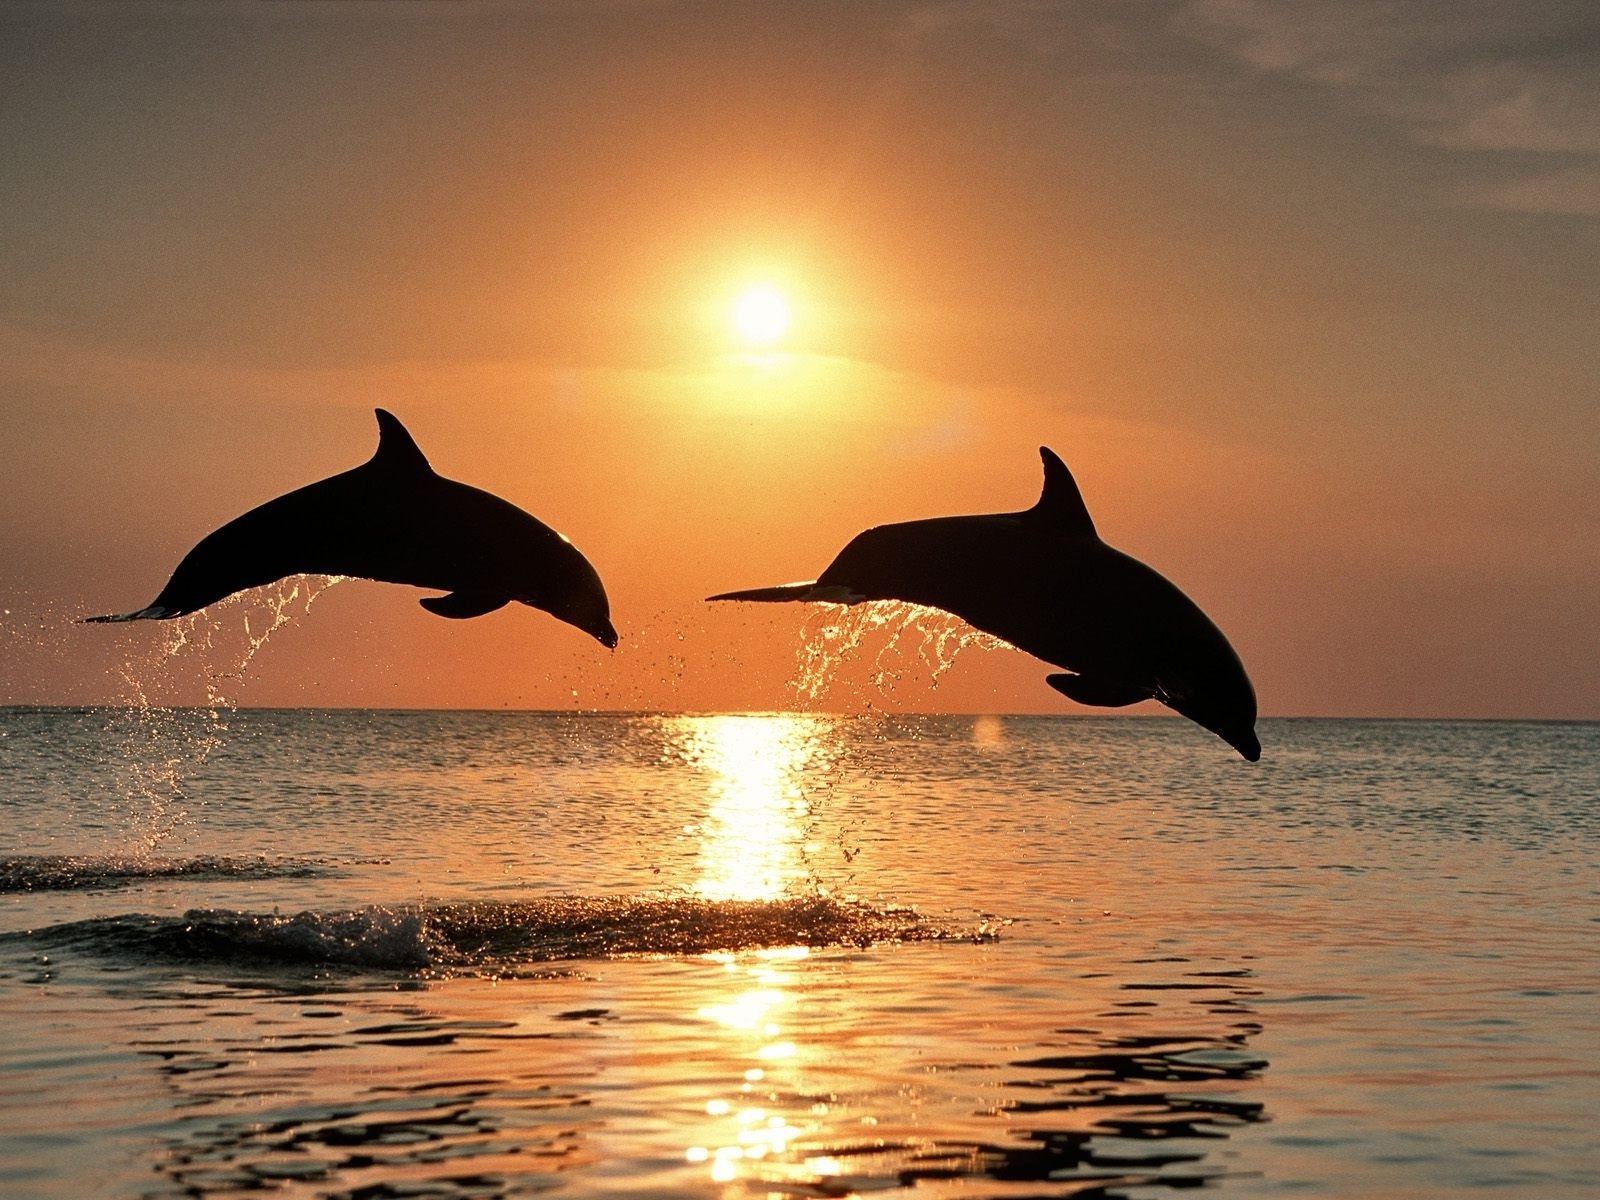 Pin by Lynn L. on From The Above~~ 從上天空... | Dolphins ...